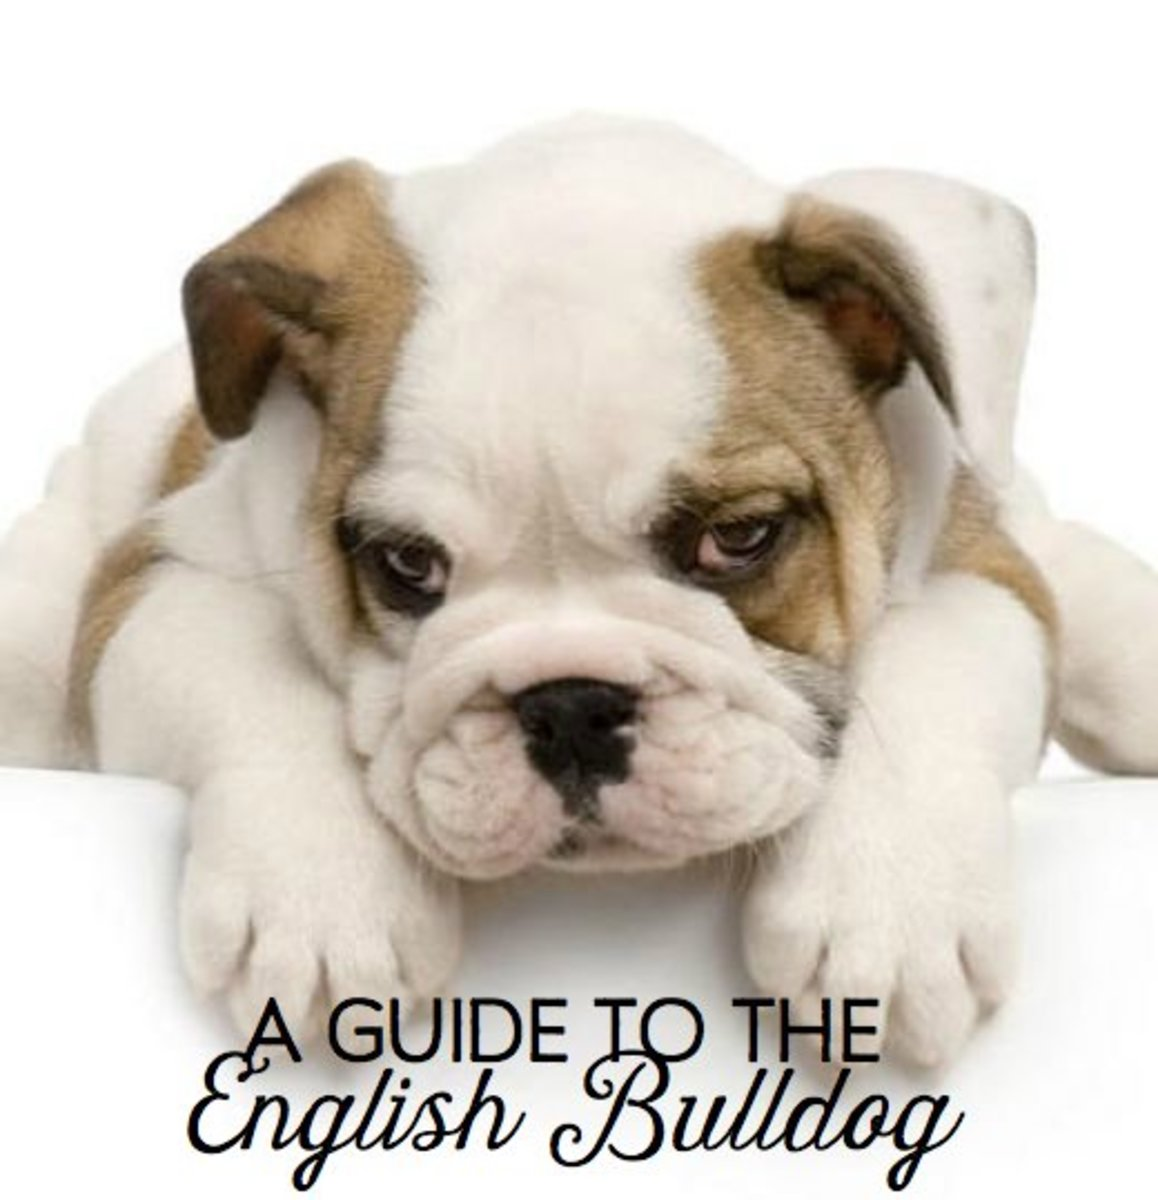 A Guide to English Bulldogs: Puppies, Temperament, Diet, and More